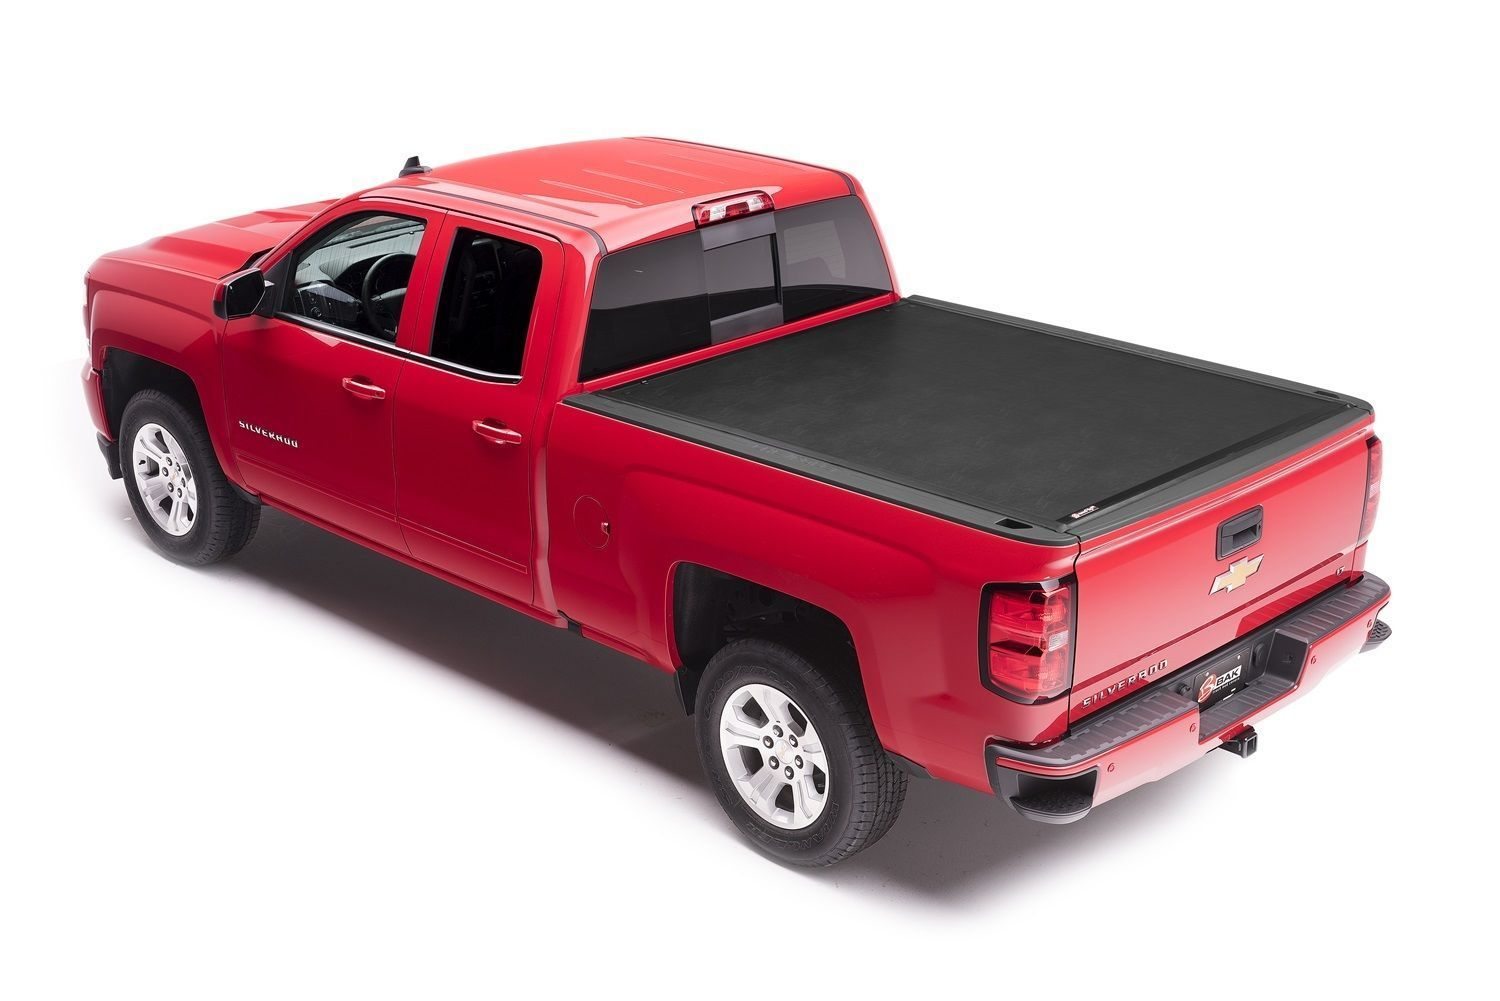 Bak Bakflip Vp Tonneau Cover For 20052016 Honda Ridgeline